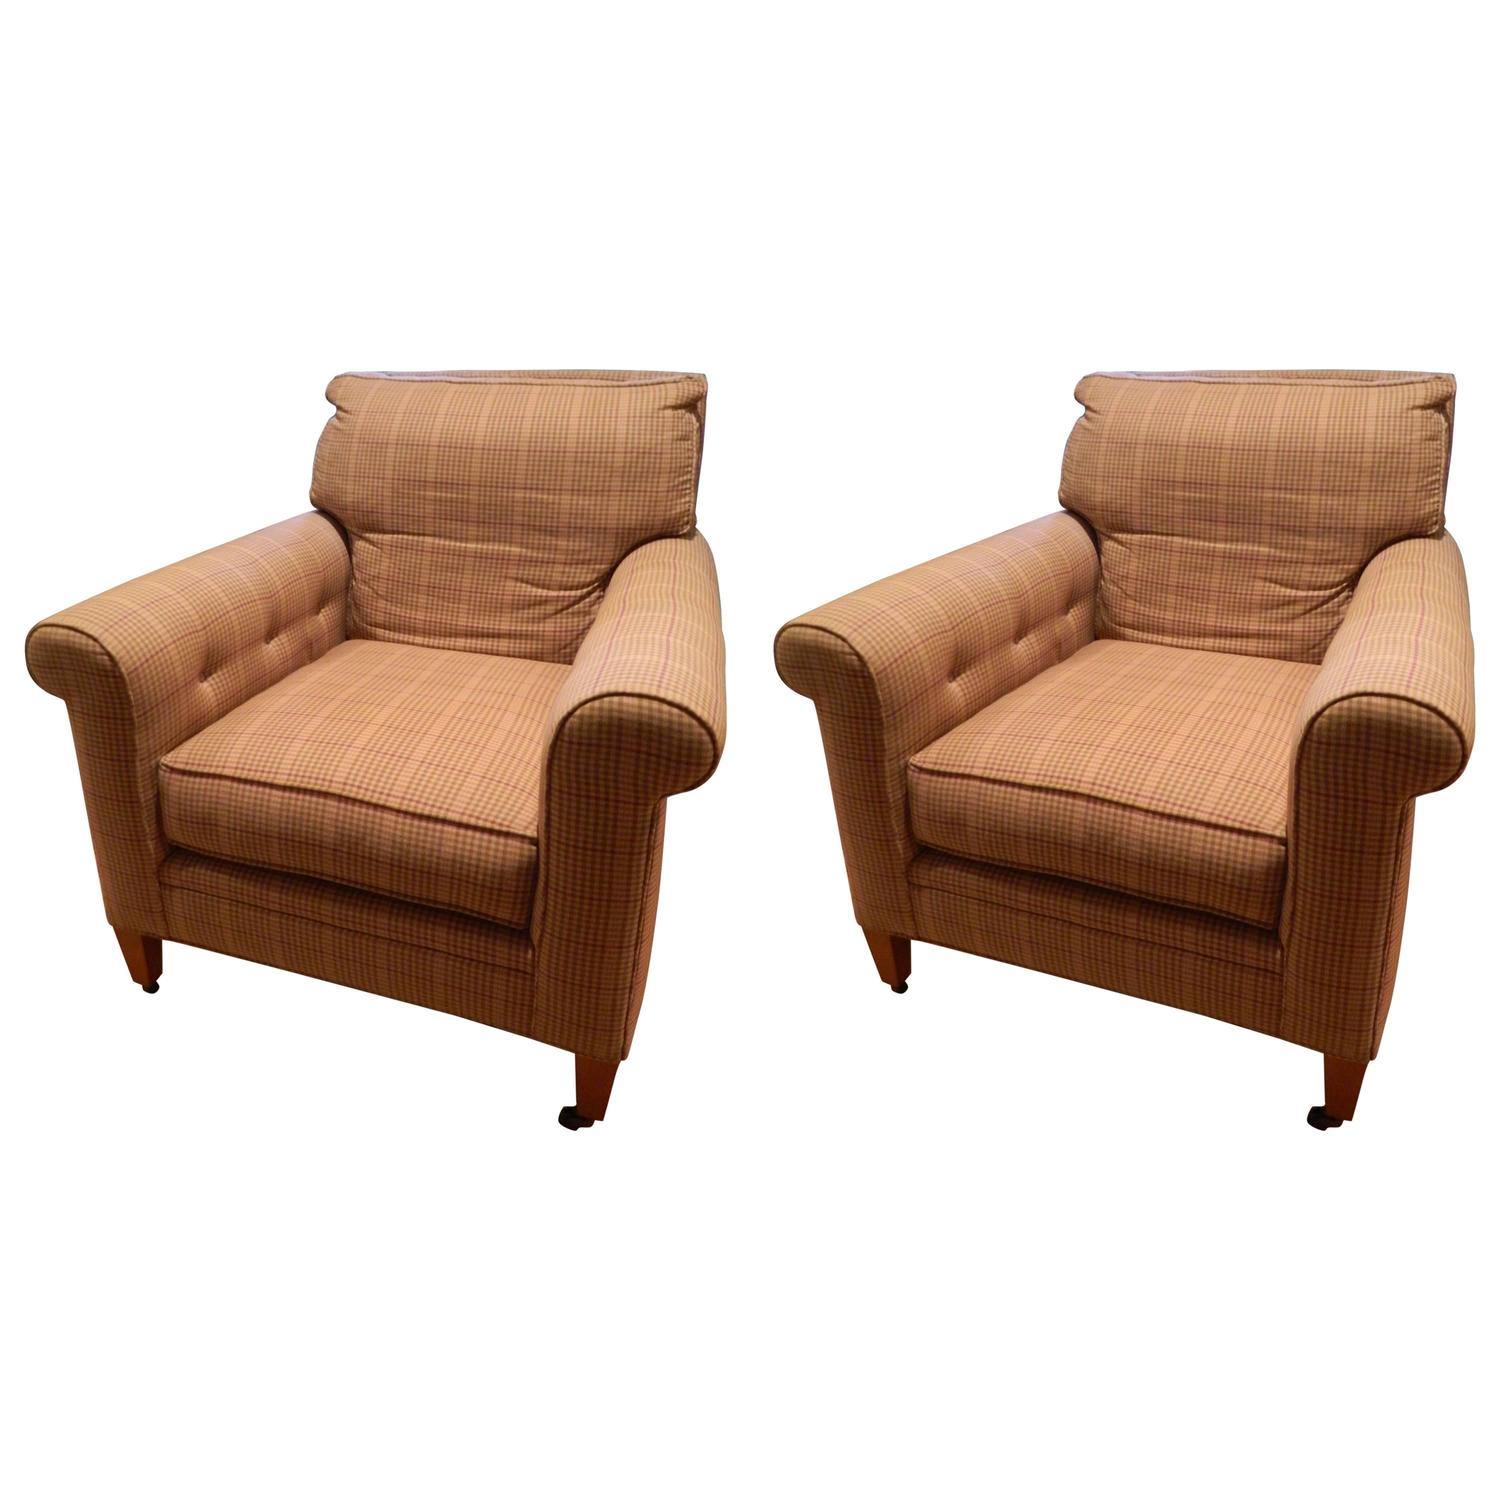 Ralph Lauren Furniture Sale: Ralph Lauren Pair Of Upholstered Chairs On Casters, 20th